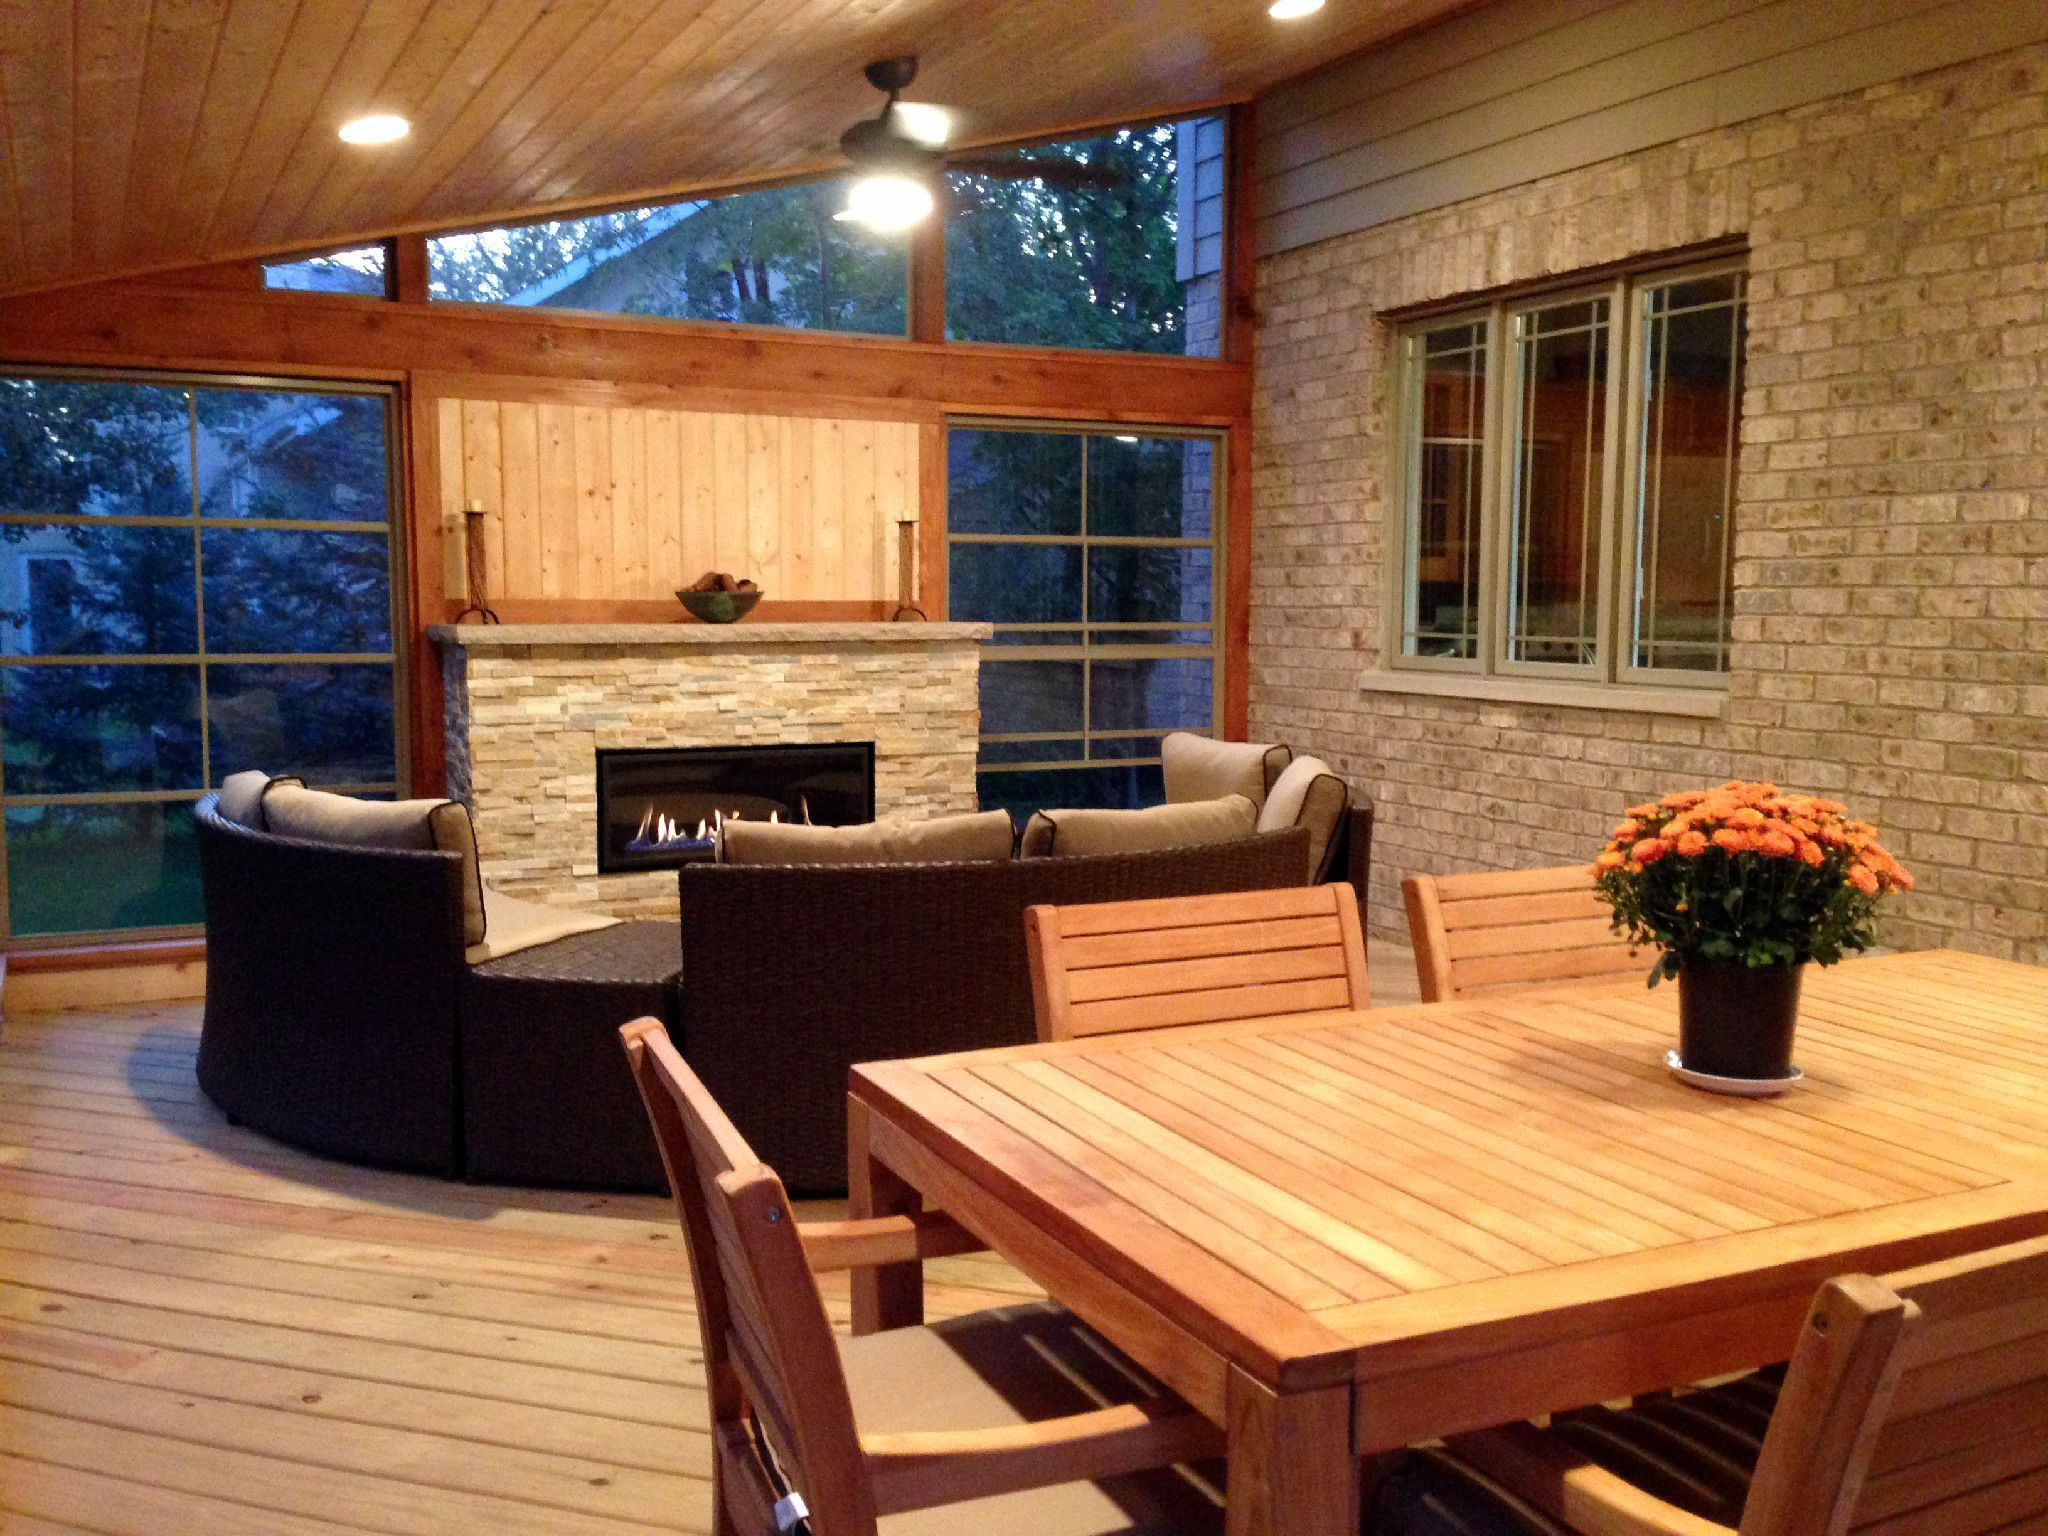 comely deck designs for 2 story house. Outdoor living What roof style should your new Chicagoland porch or sunroom have